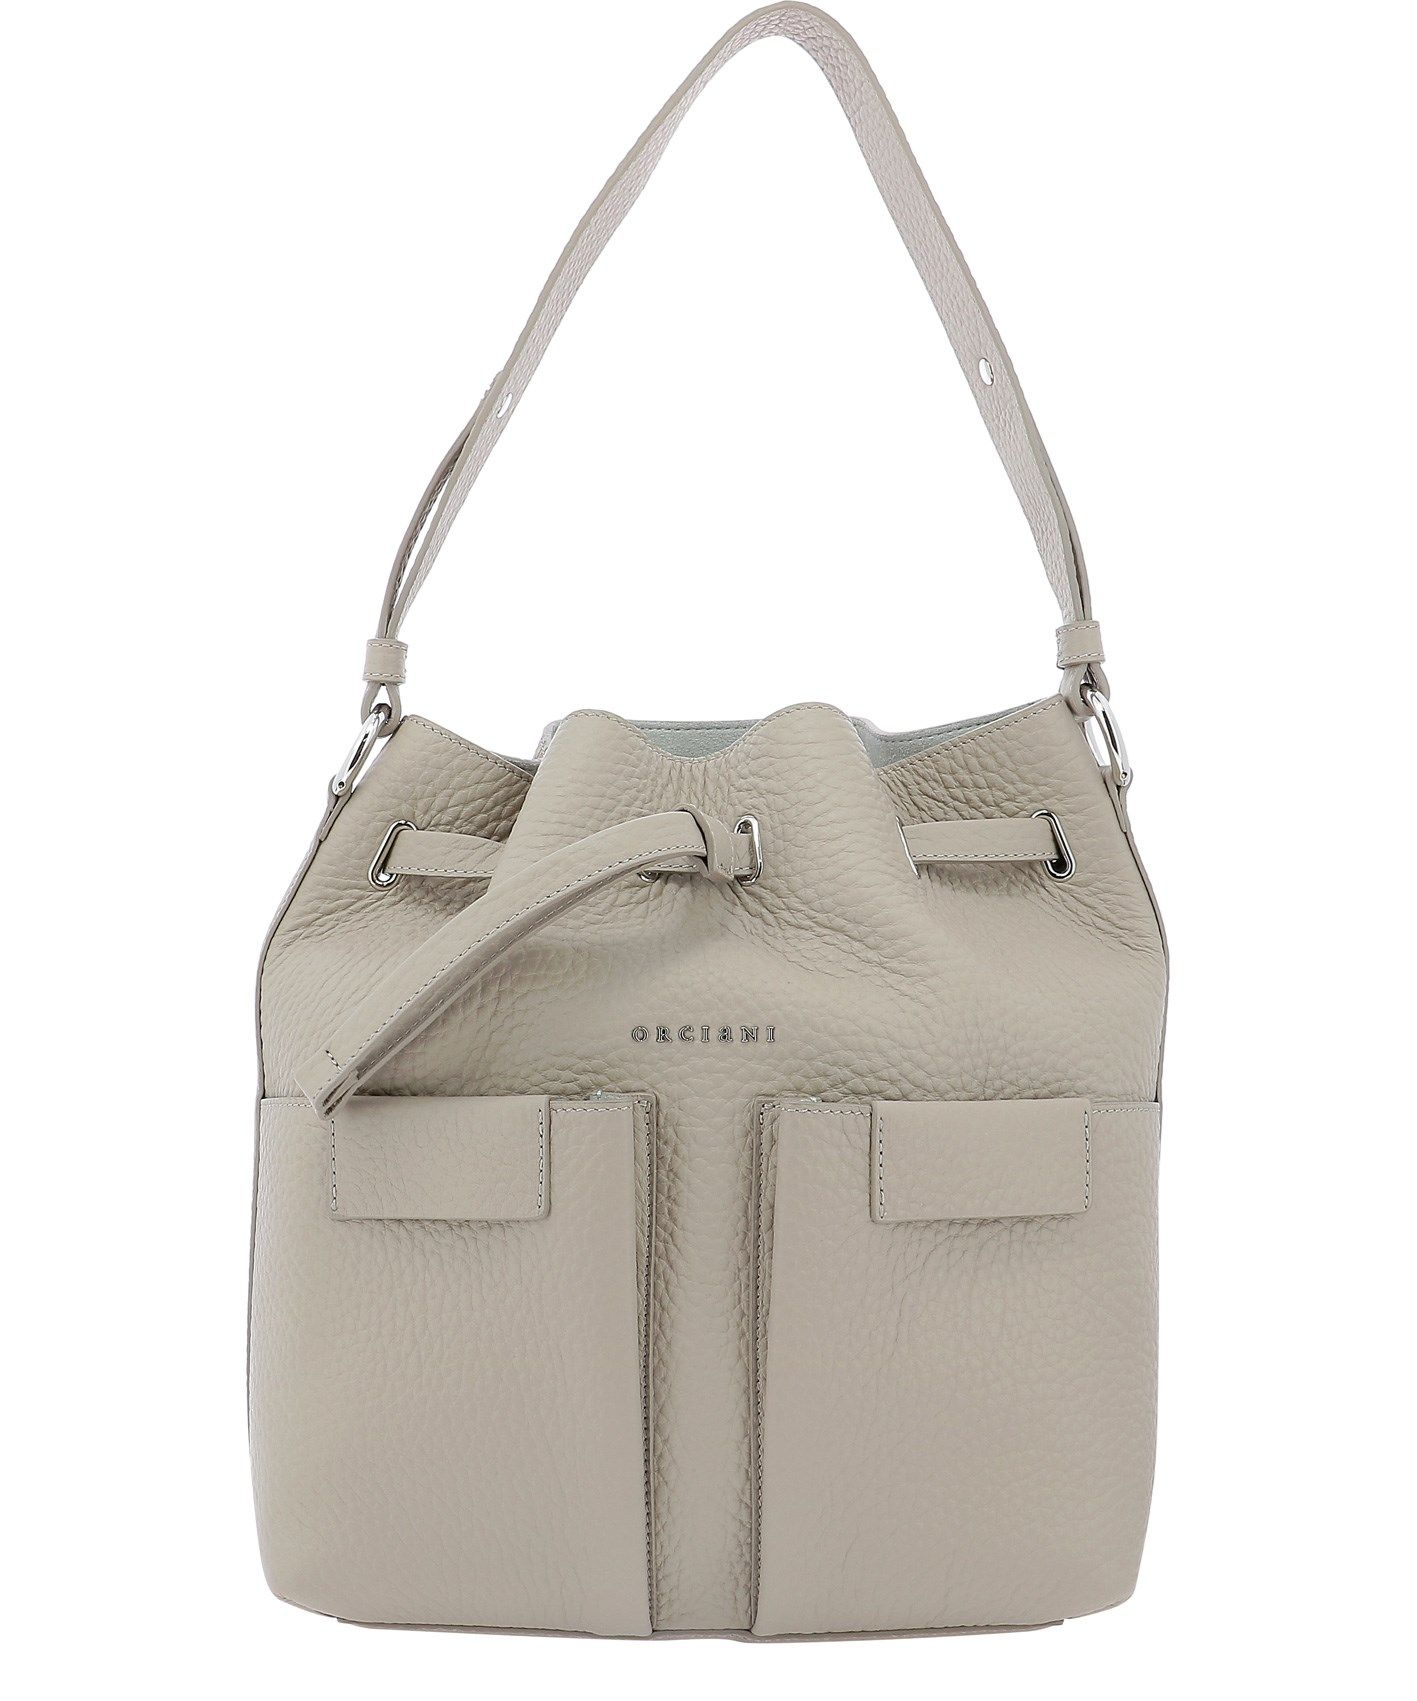 Orciani Leathers ORCIANI WOMEN'S B02097SOFTCONCHIGLIA BEIGE OTHER MATERIALS HANDBAG